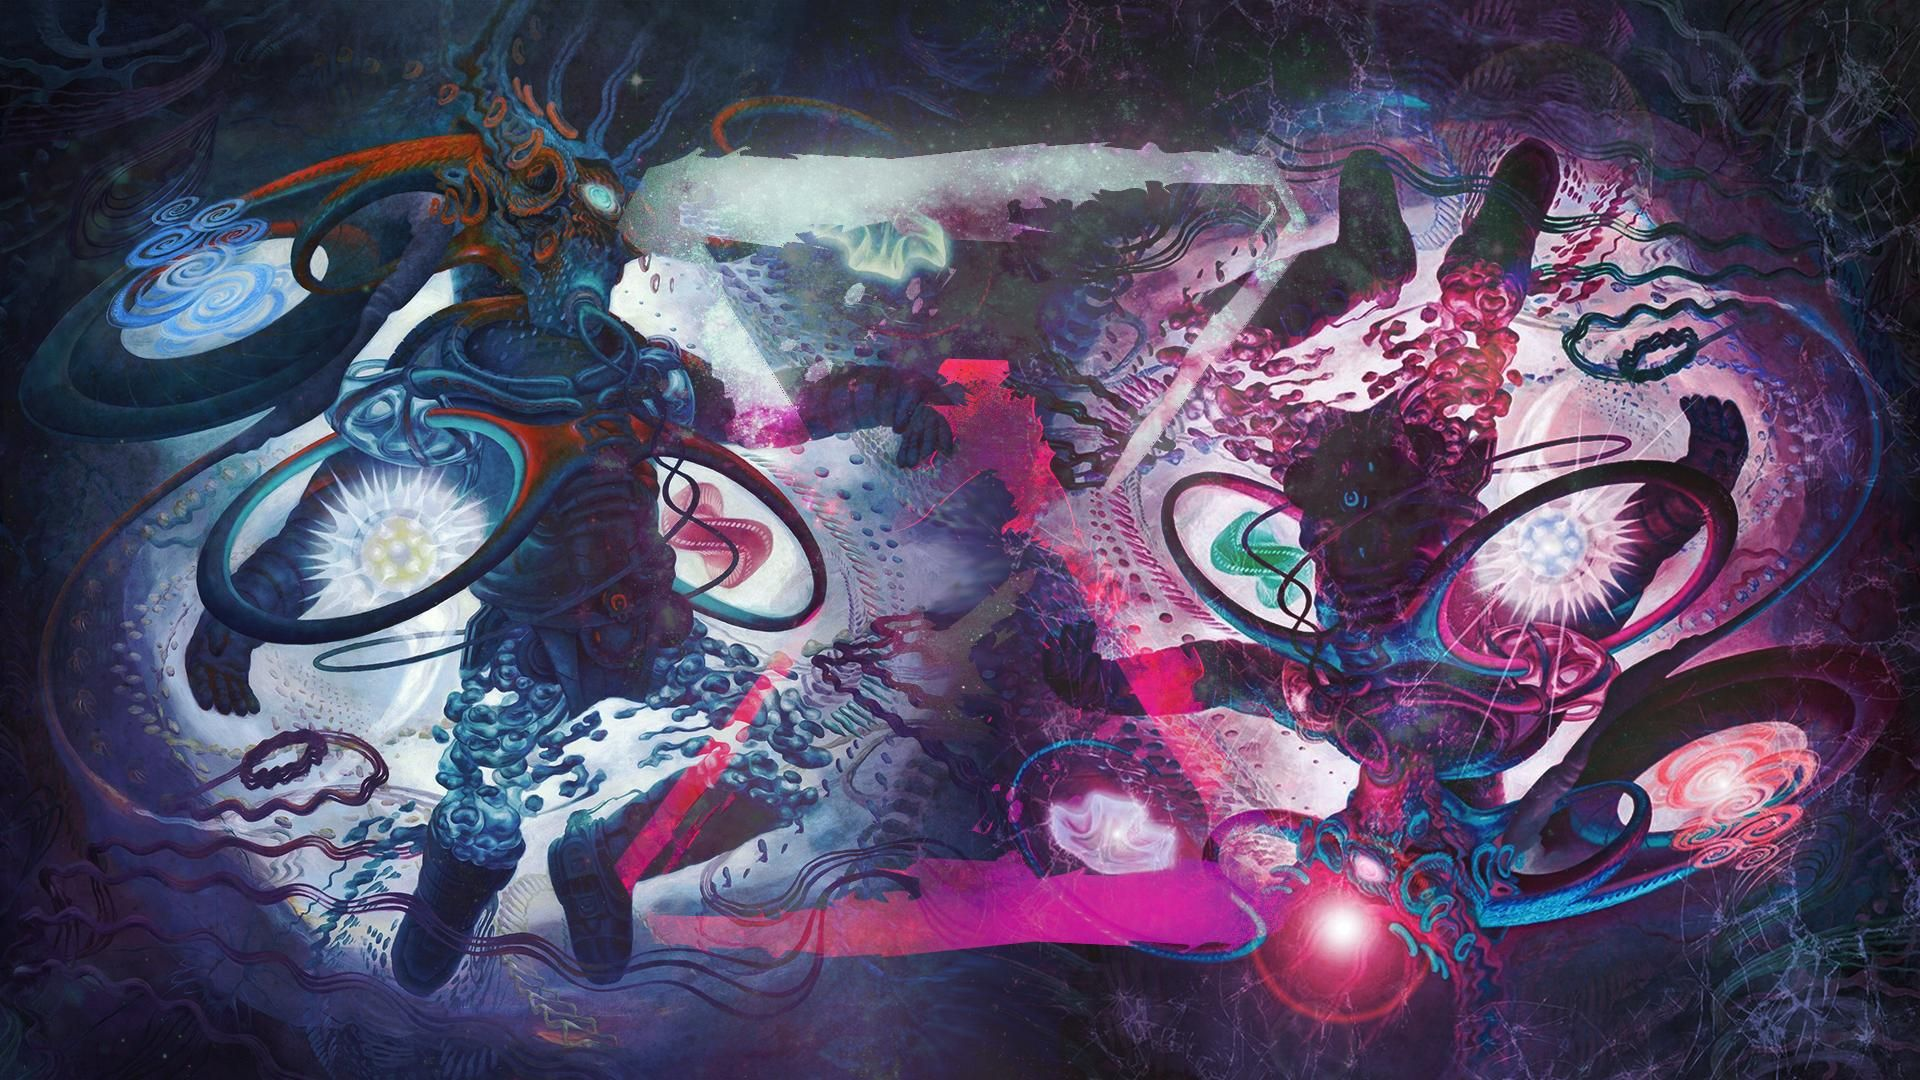 Coheed And Cambria The Afterman Ascension Descension Wallpaper Coheed And Cambria Cambria Wallpaper